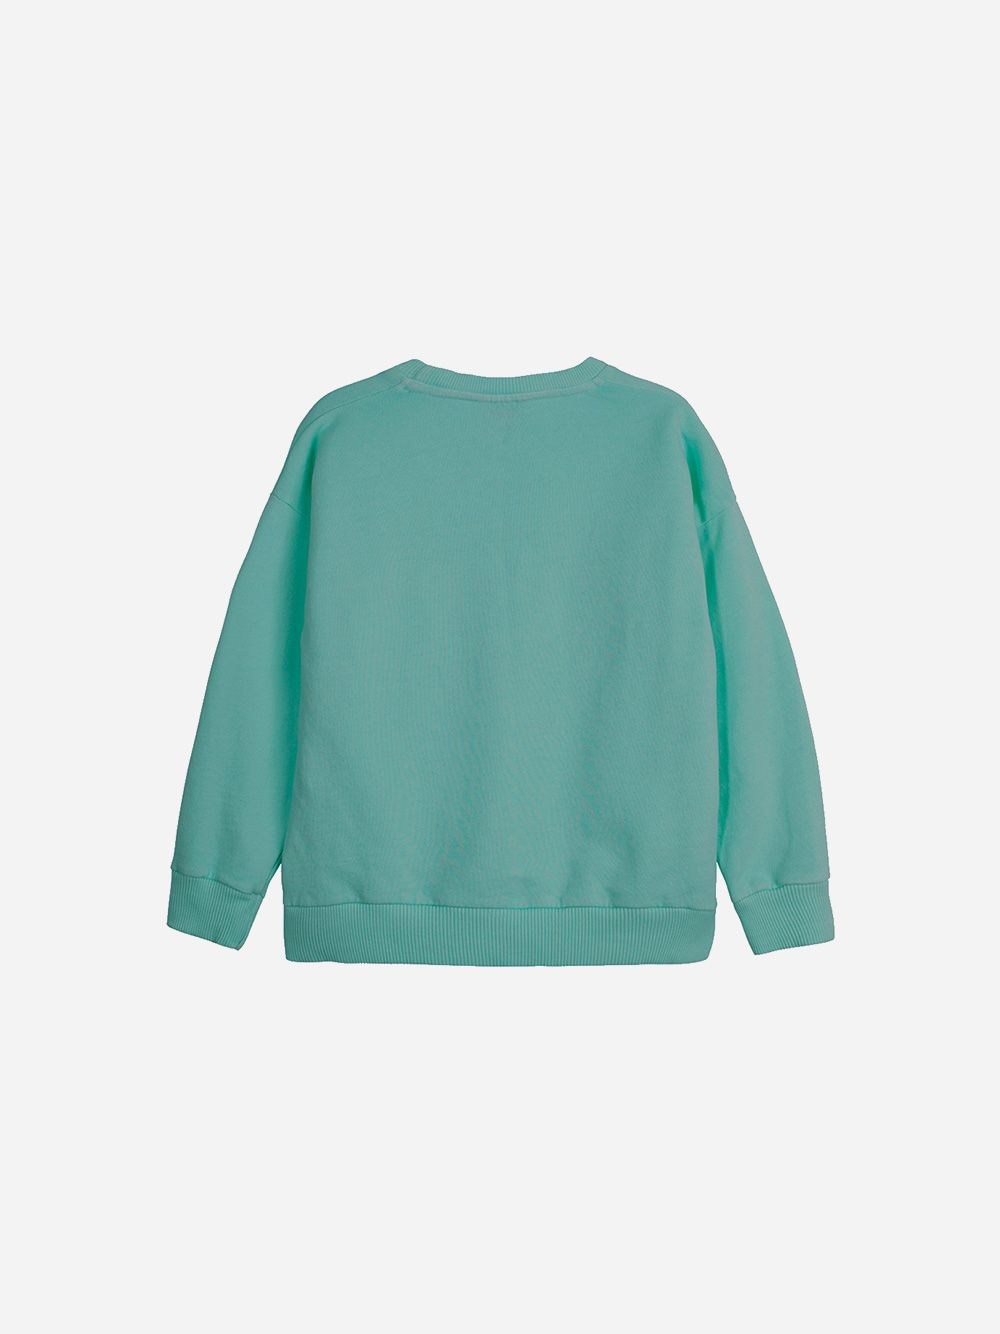 Sweatshirt Beija Flor Esmeralda | Barn of Monkeys